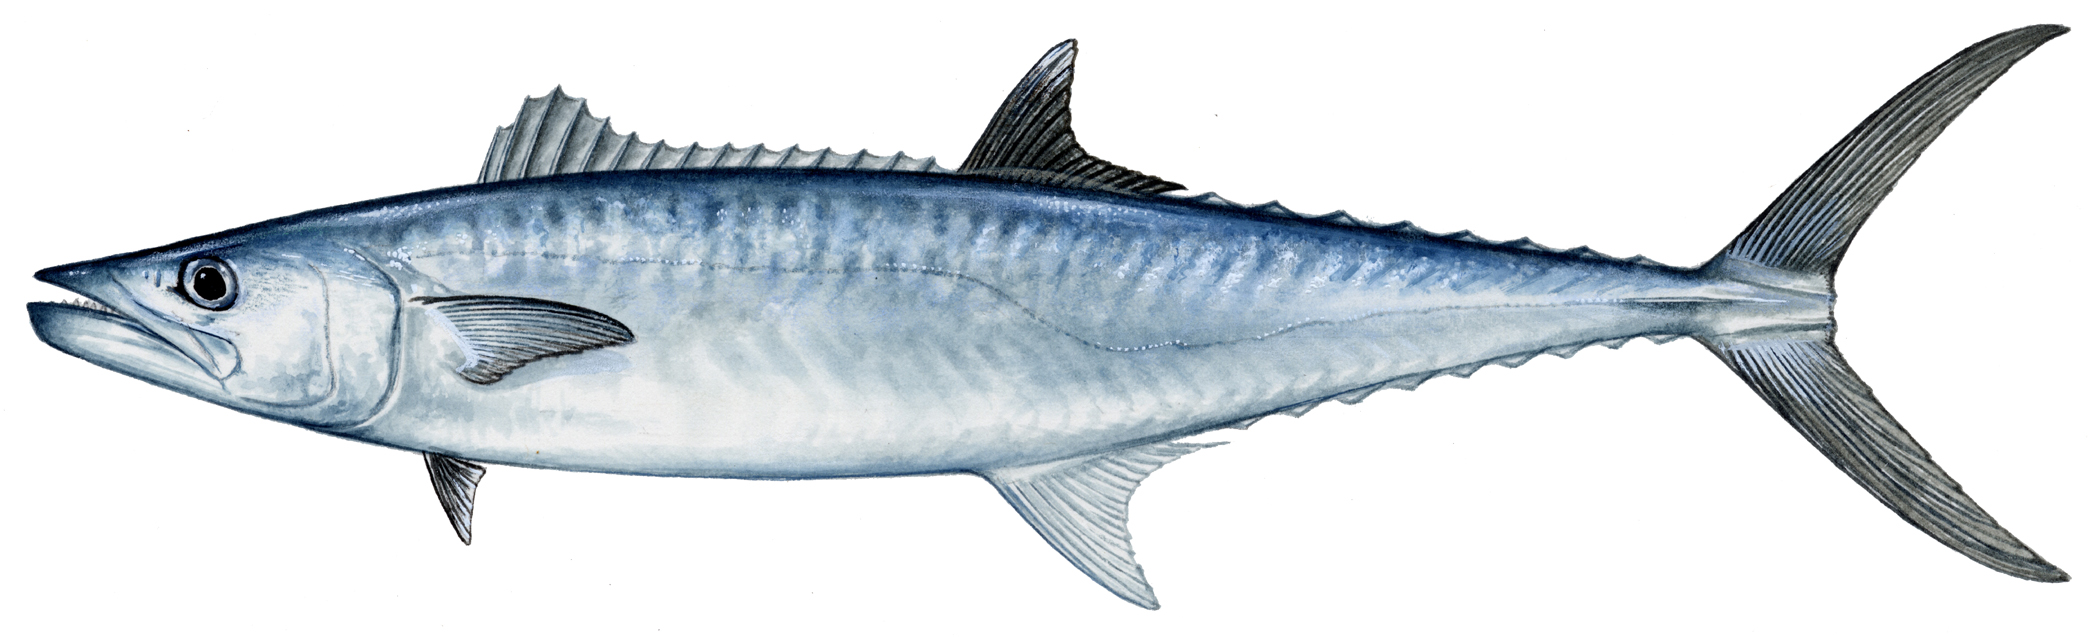 Upcoming events louisiana lagniappe for Spanish mackerel fish